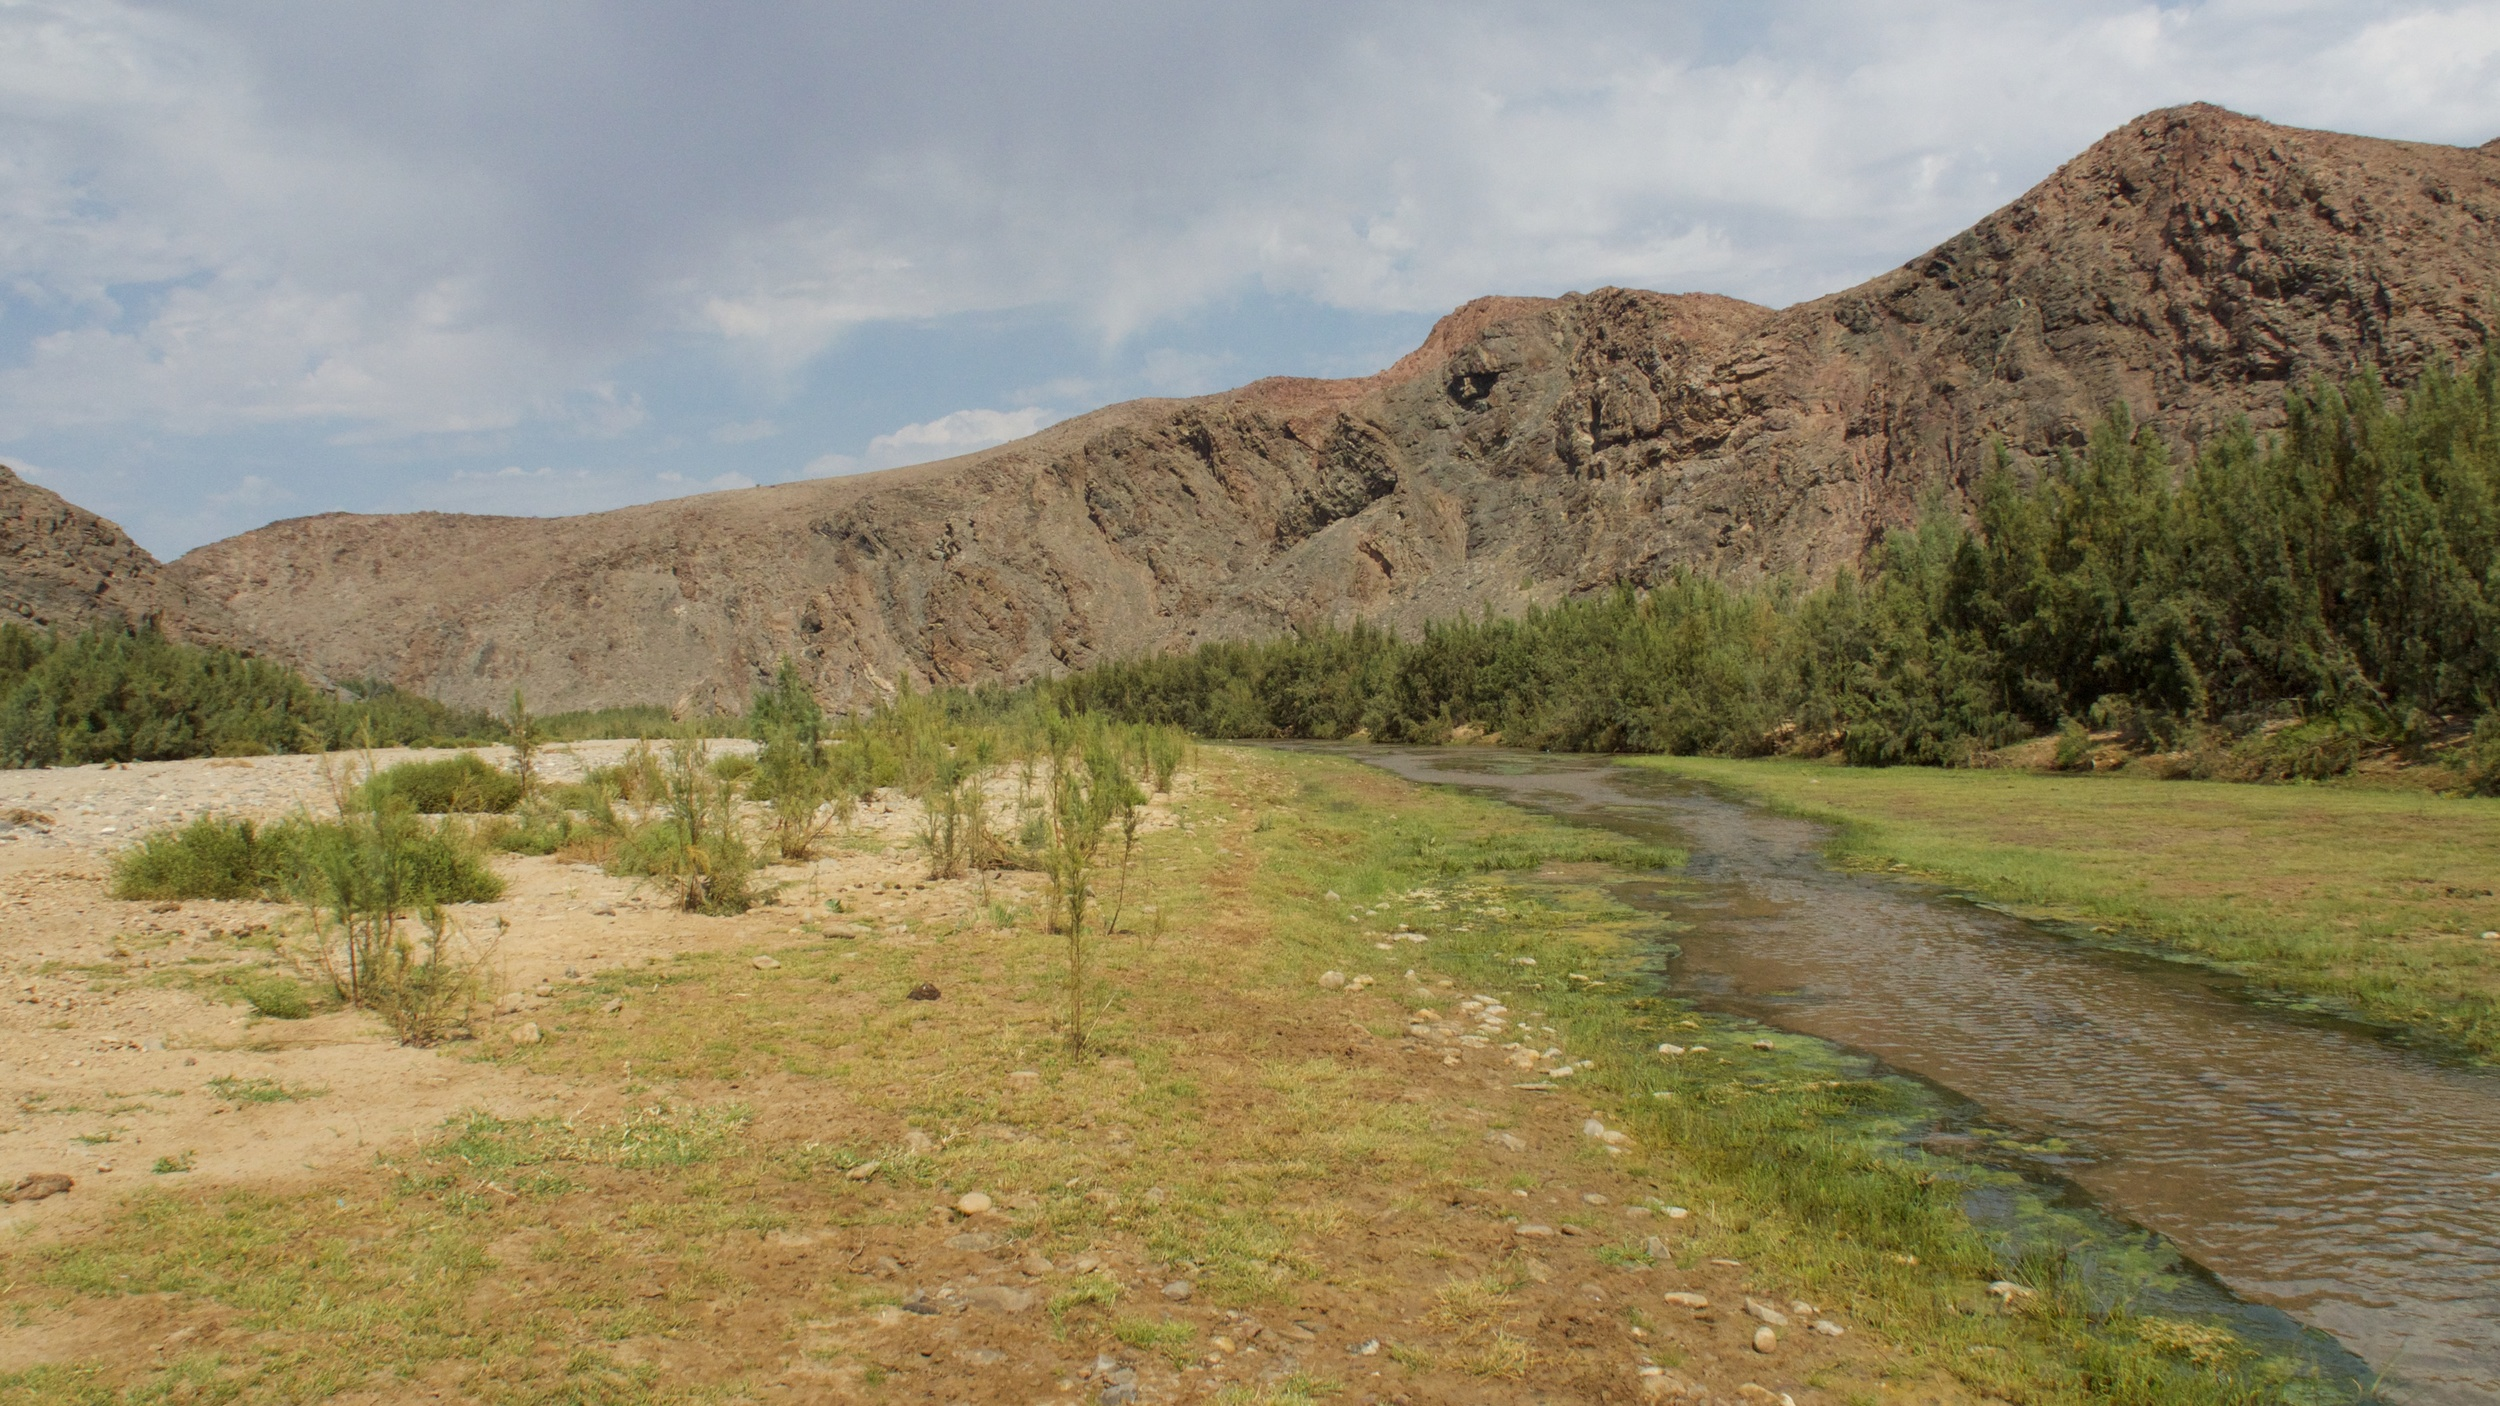 The ephemeral Hoarusib river, a few km west of Purros where the life giving water surfaces - sometimes!